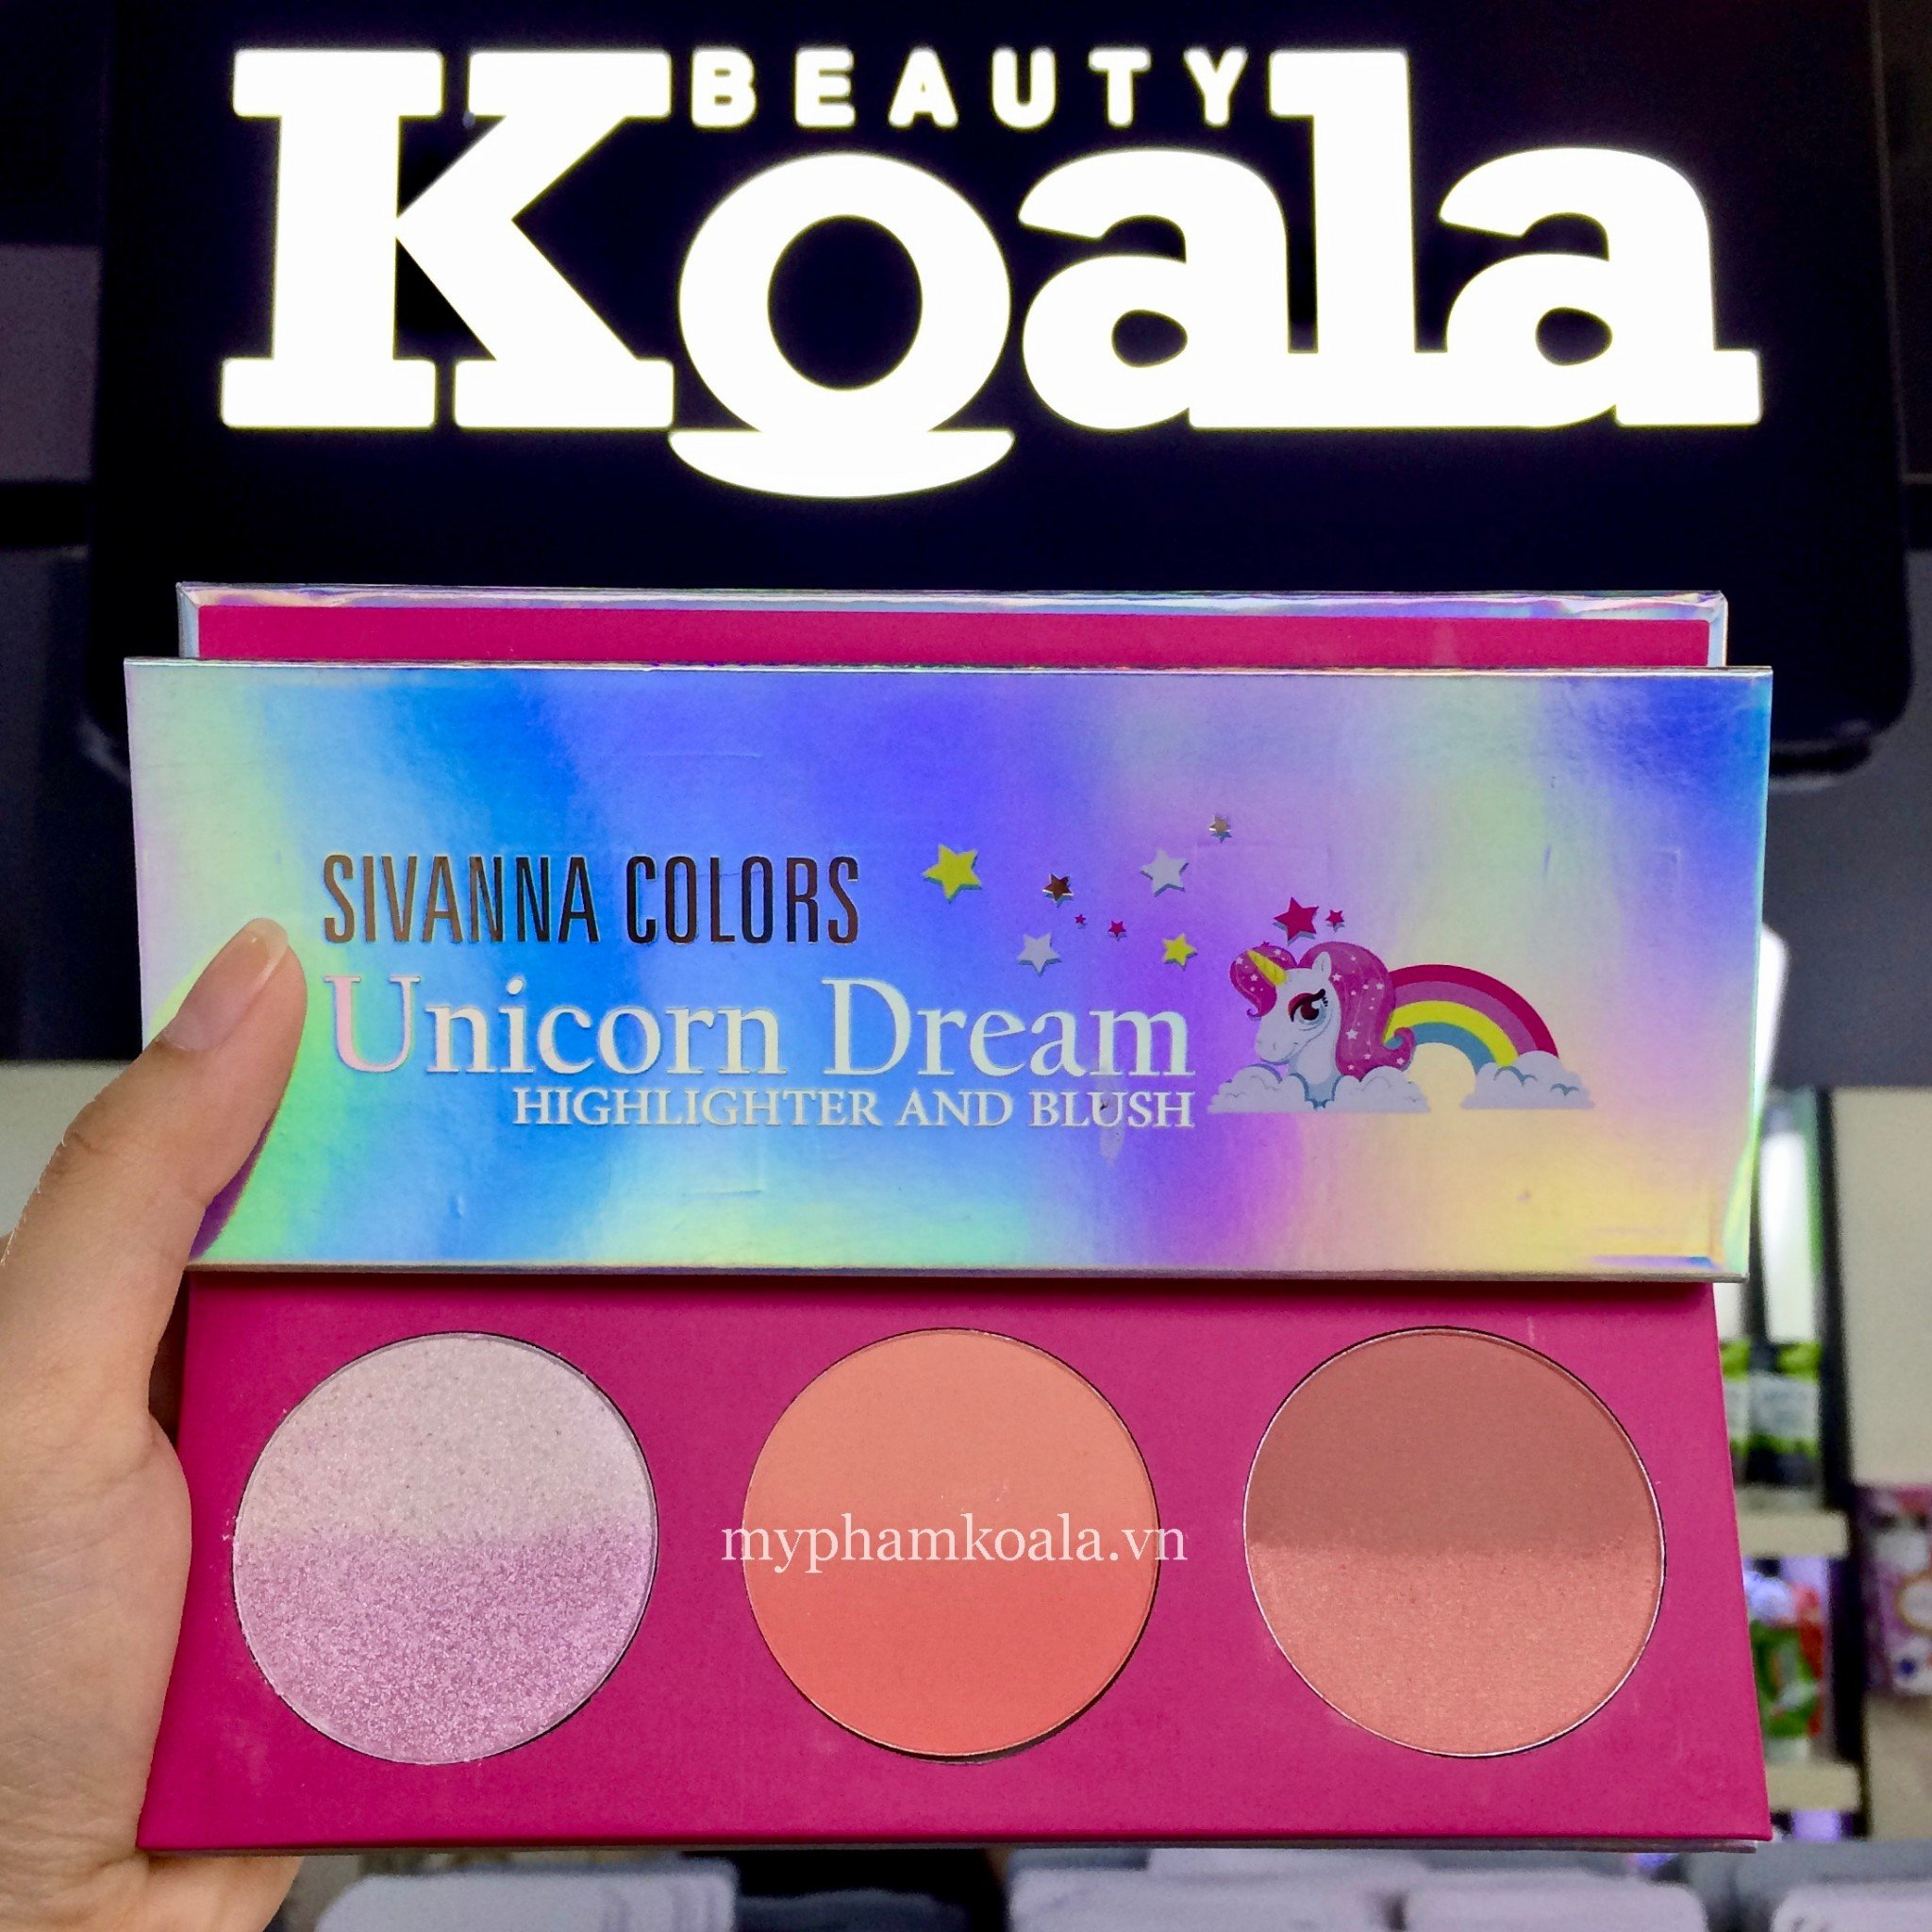 Má Hồng Bắt Sáng Tạo Khối 3in1 Sivanna Colors Unicorn Dream Highlighter And Blush